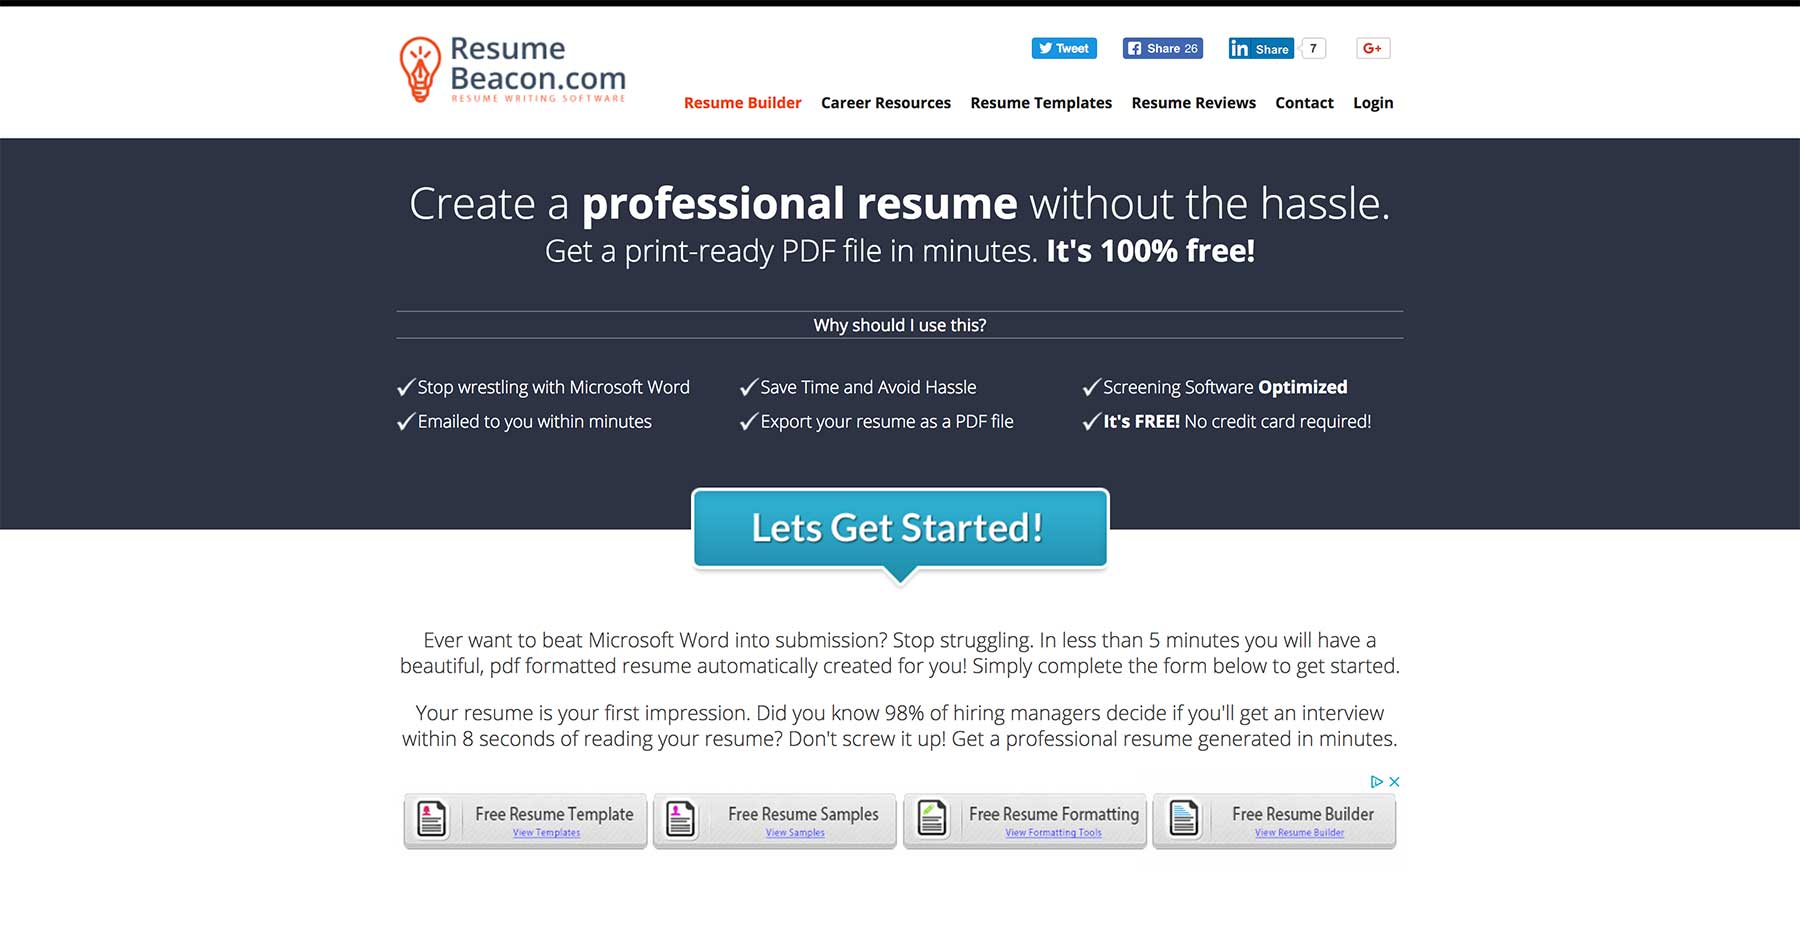 Web Resume Builder Web Resume Builder Resume Beacon Homepage